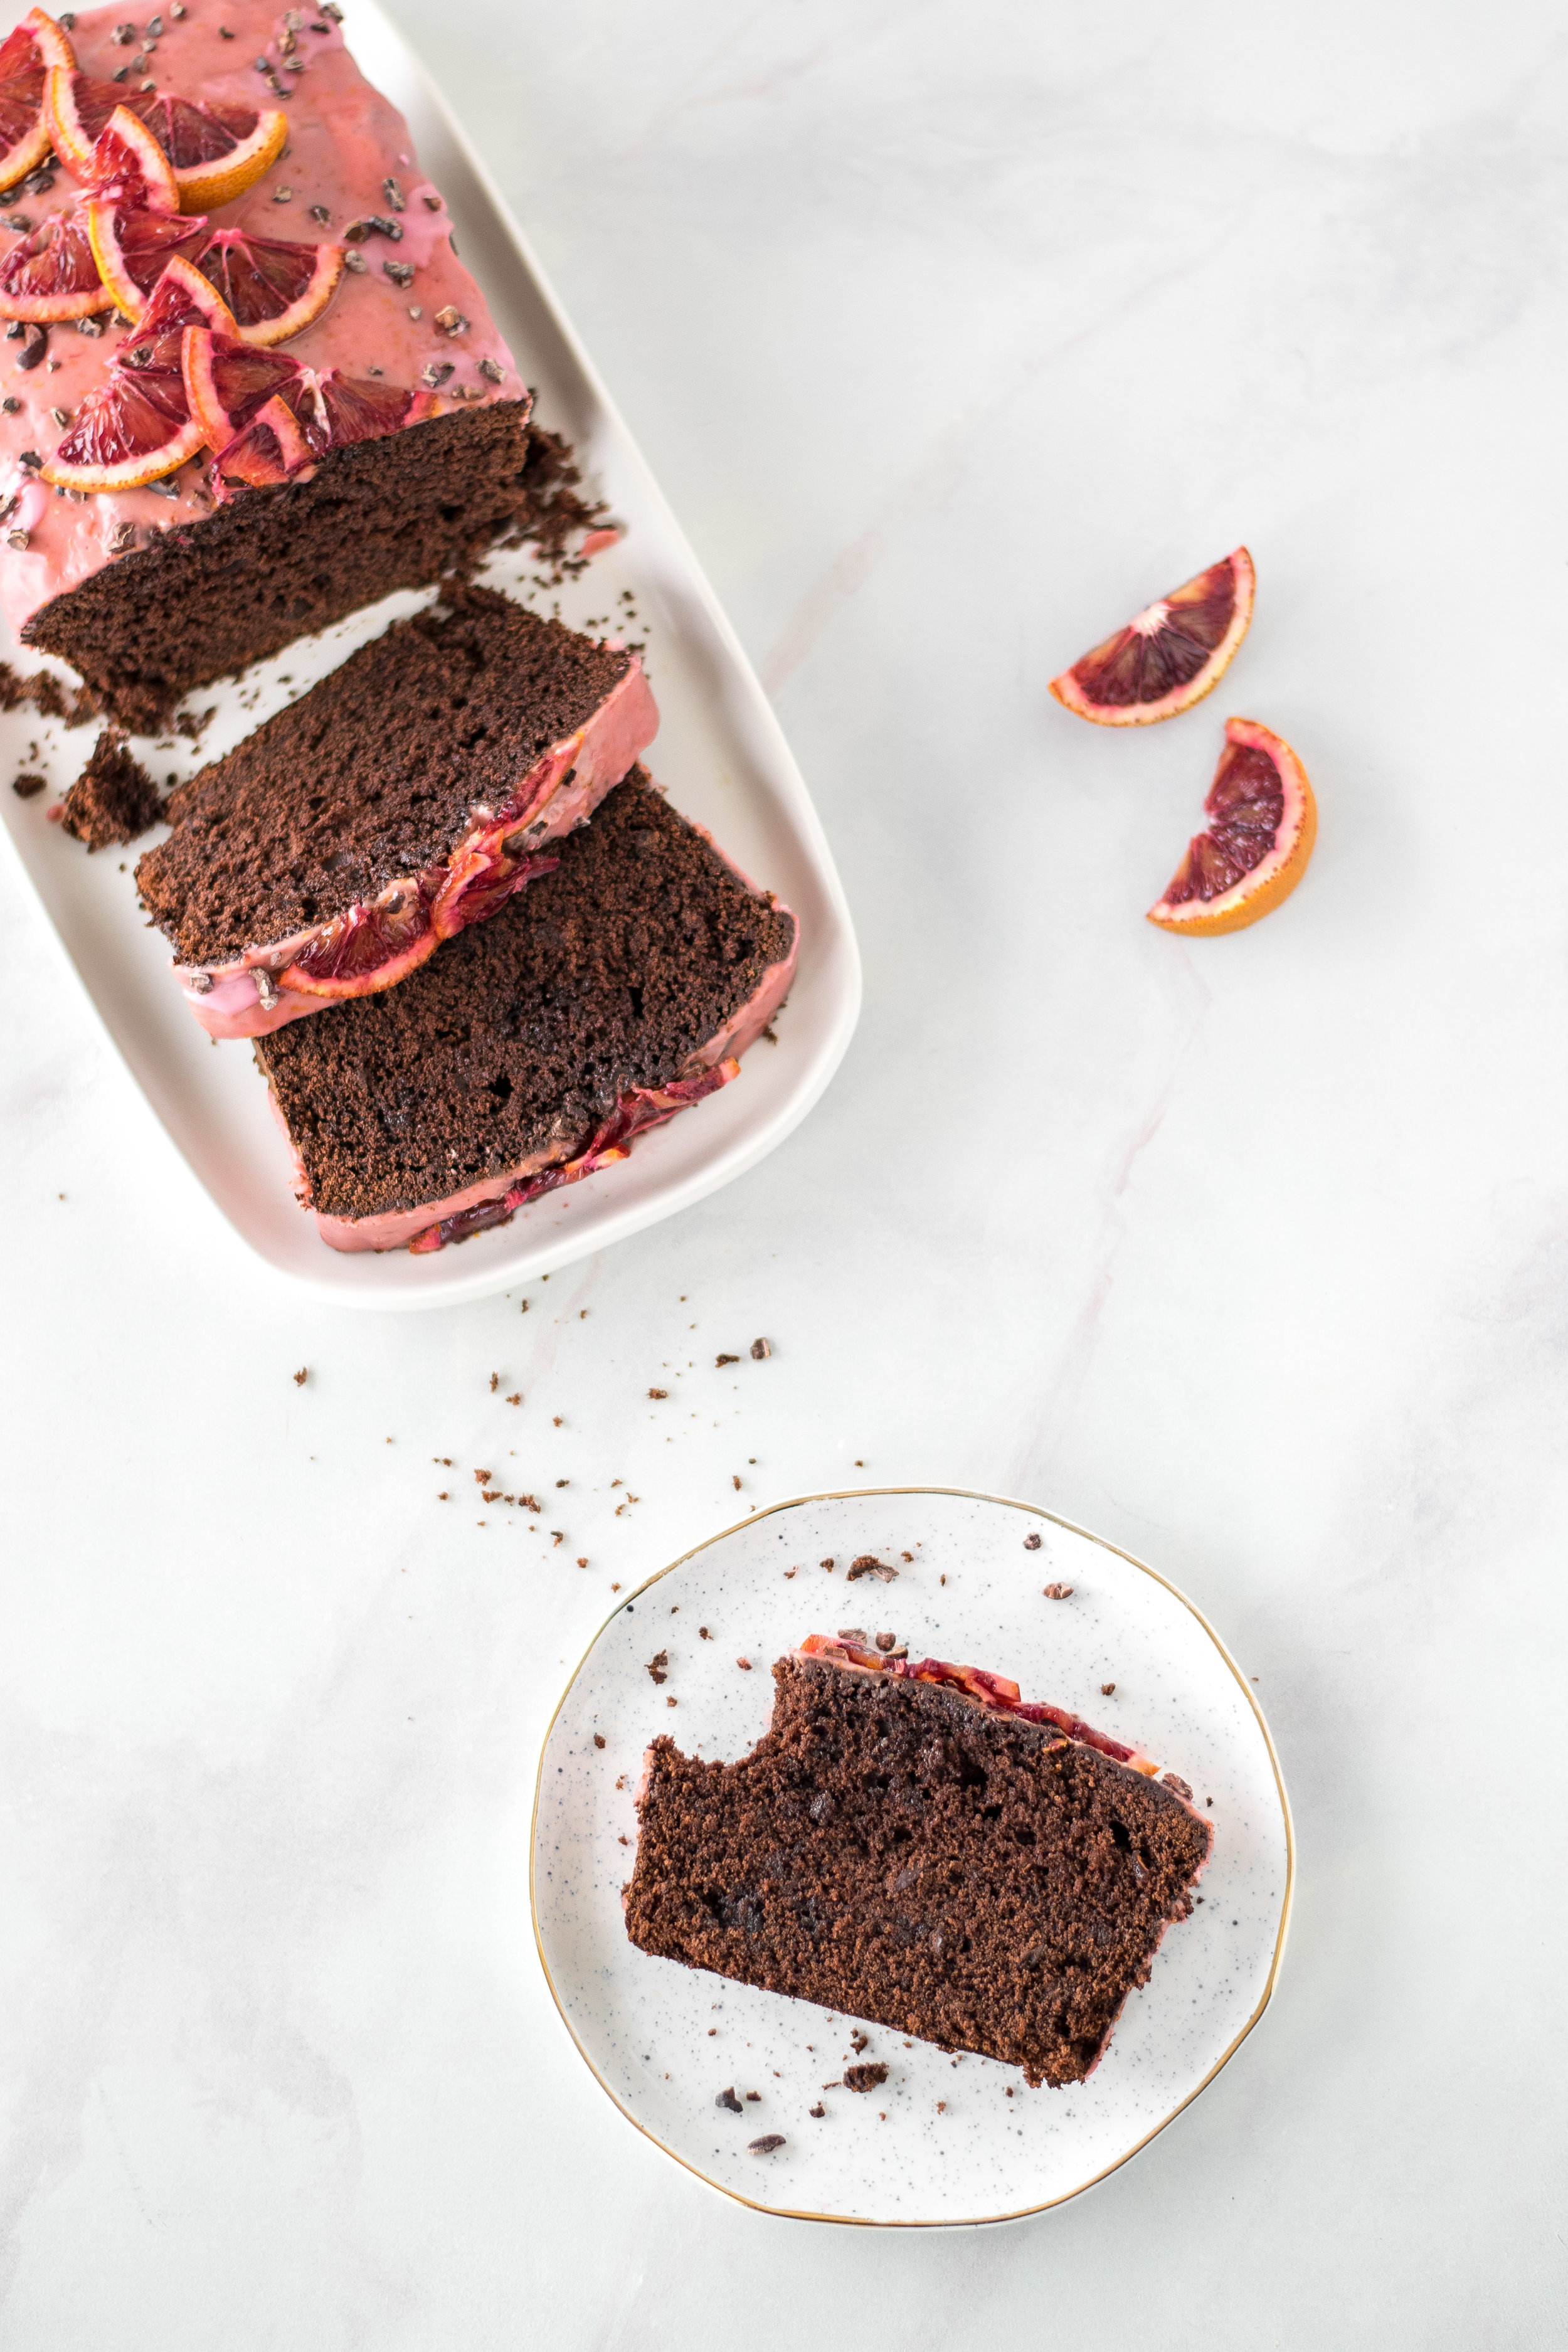 Chocolate Buttermilk + Blood Orange Loaf Cake with Cacao Nibs | All Purpose Flour Child